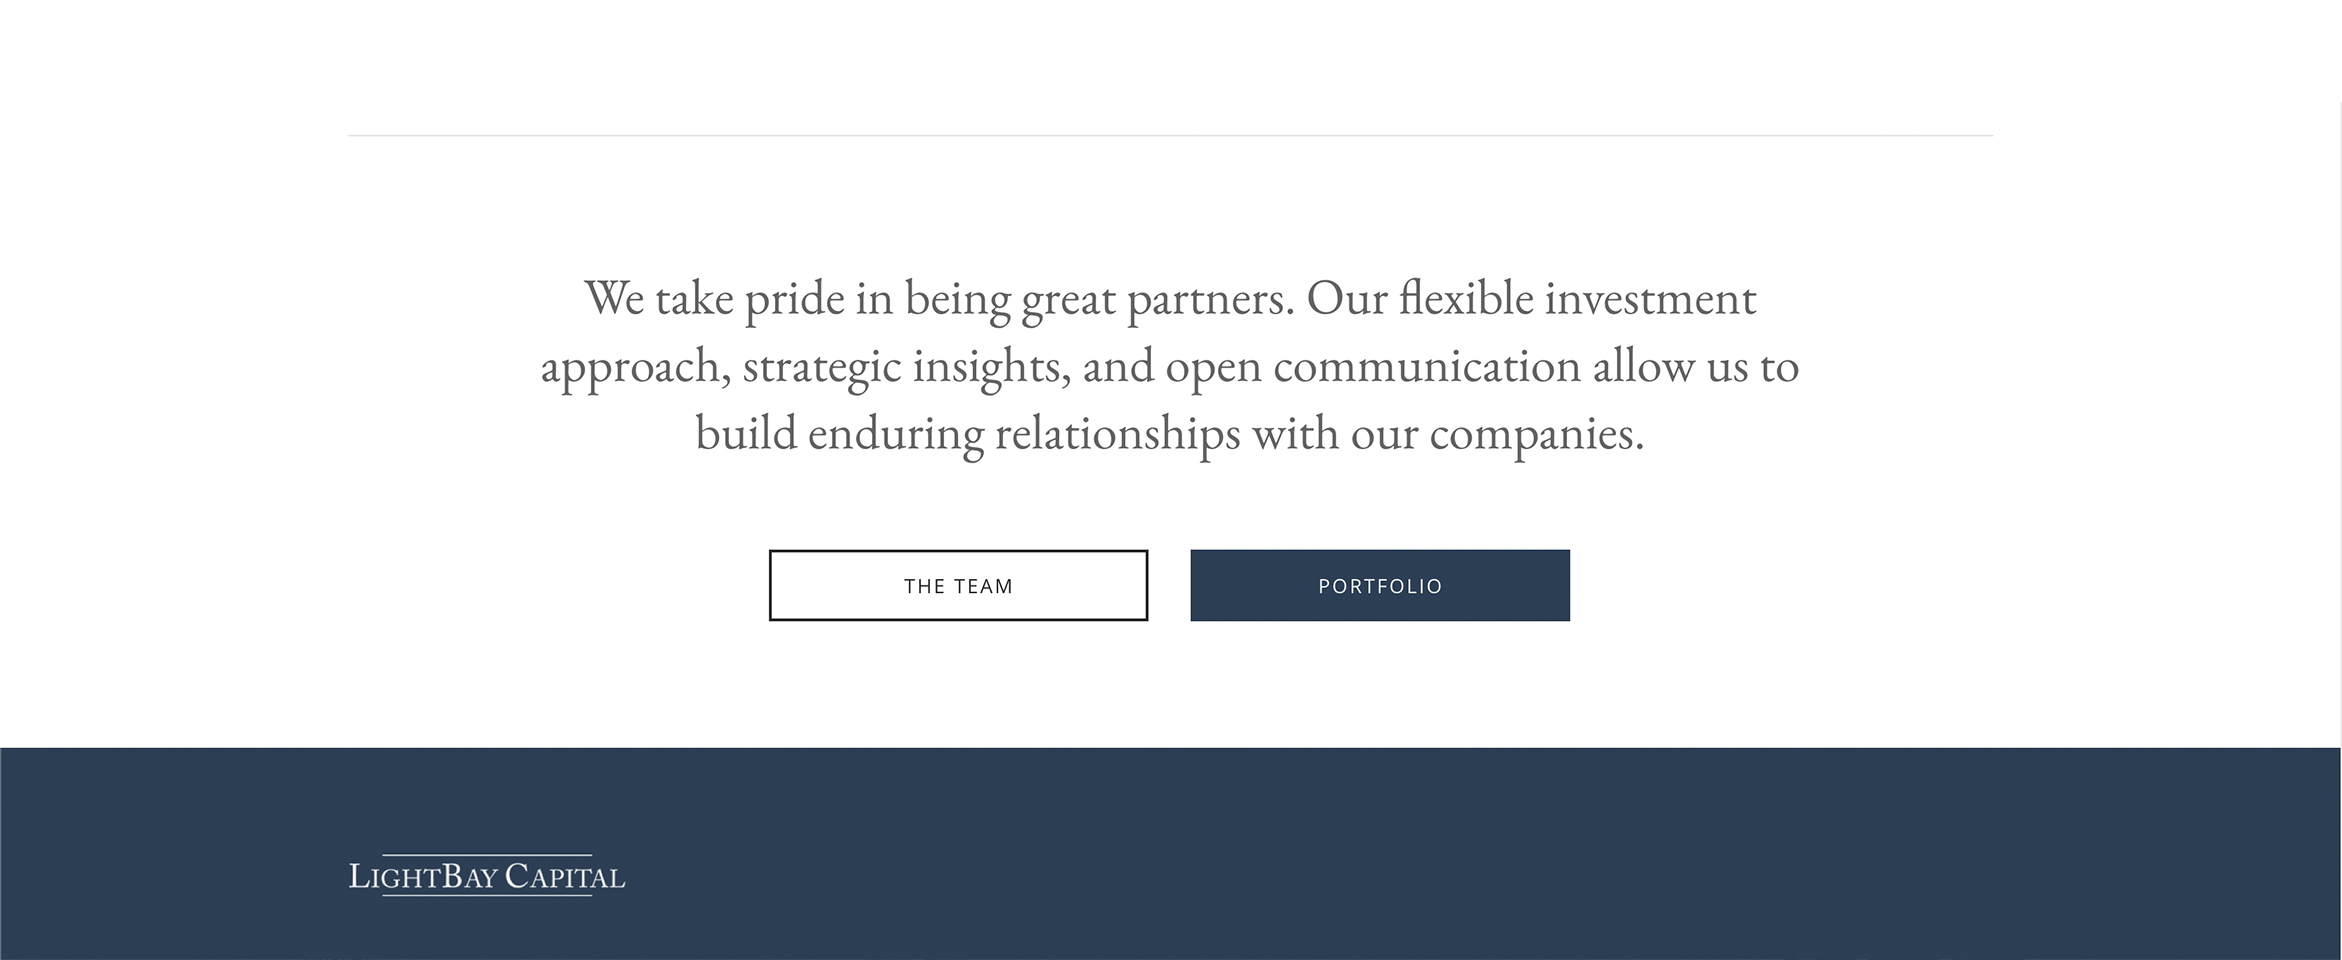 Investment firm acquires a beautiful new website with a modern touch Build Image-0